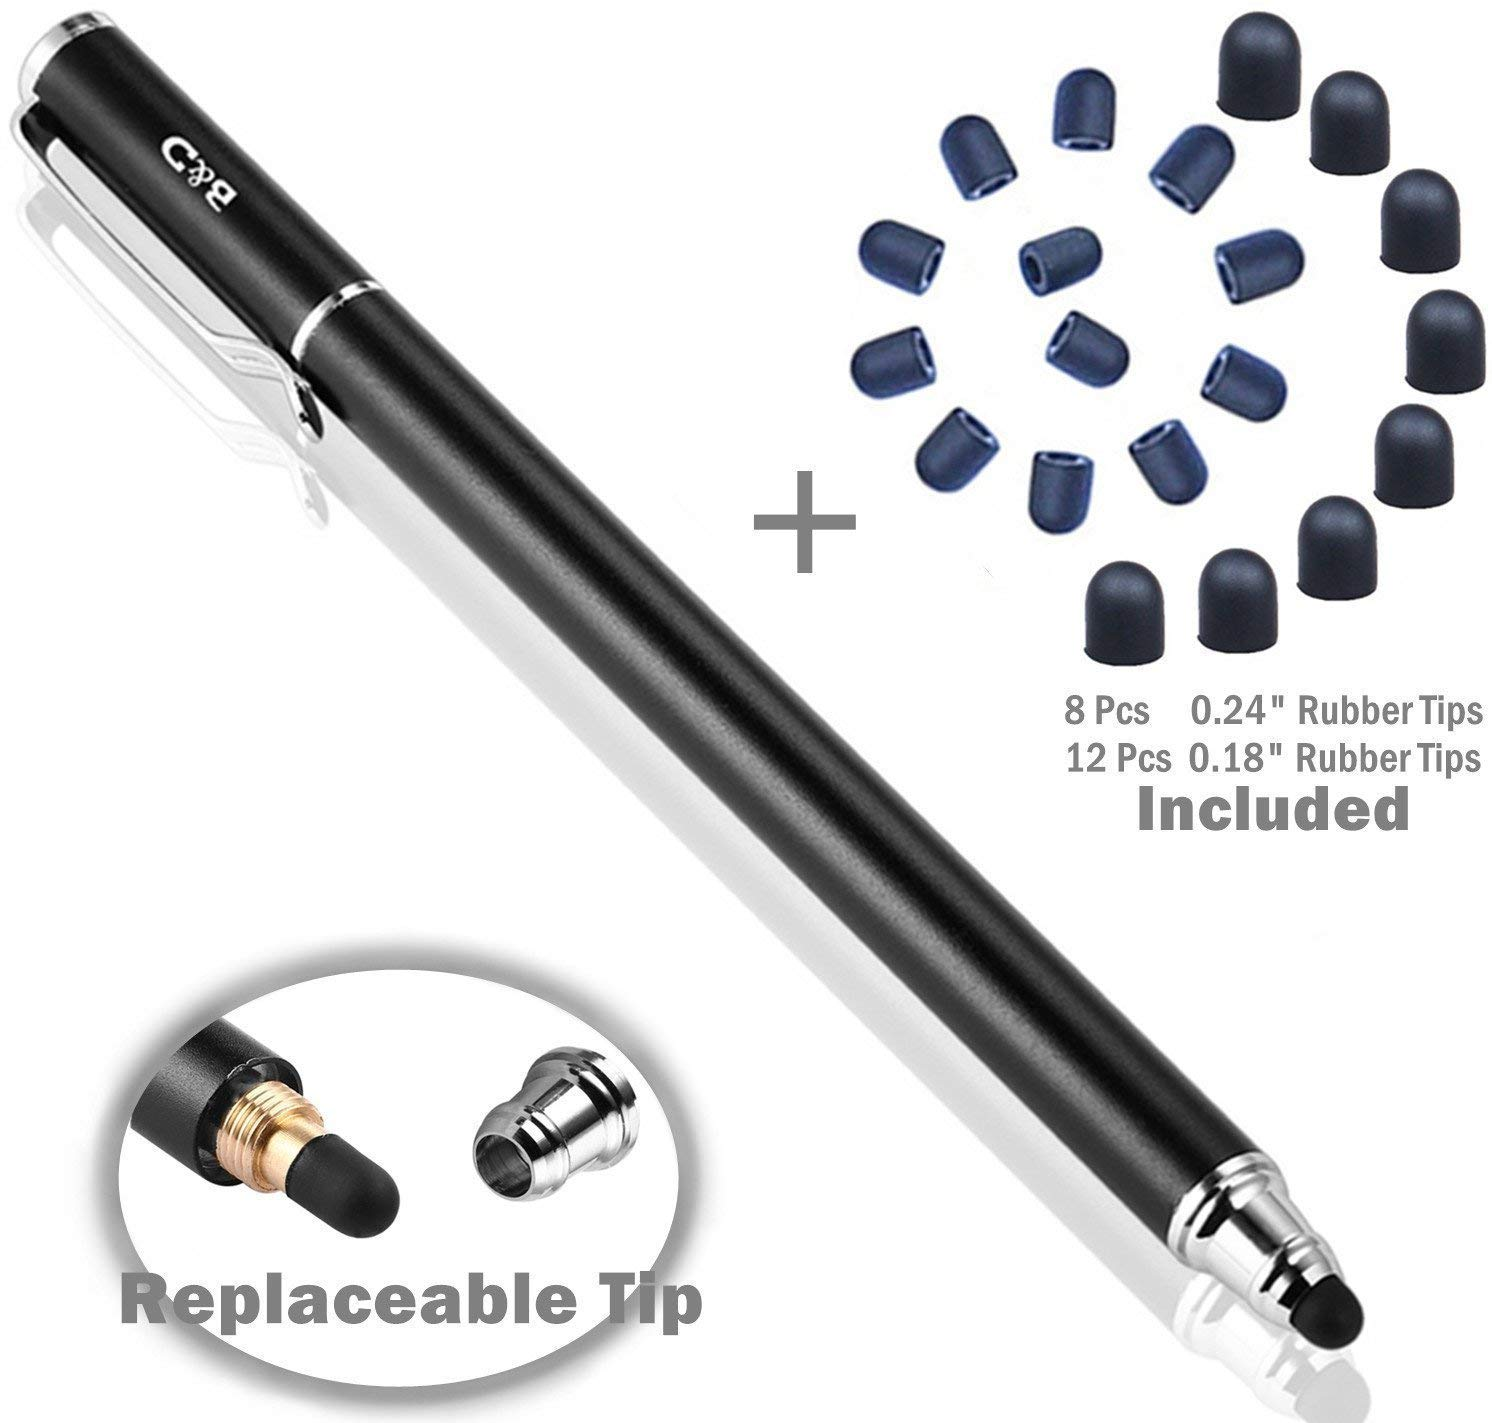 B&D Capacitive Stylus Pen 2-in-1 Styli Touch Screen Pen